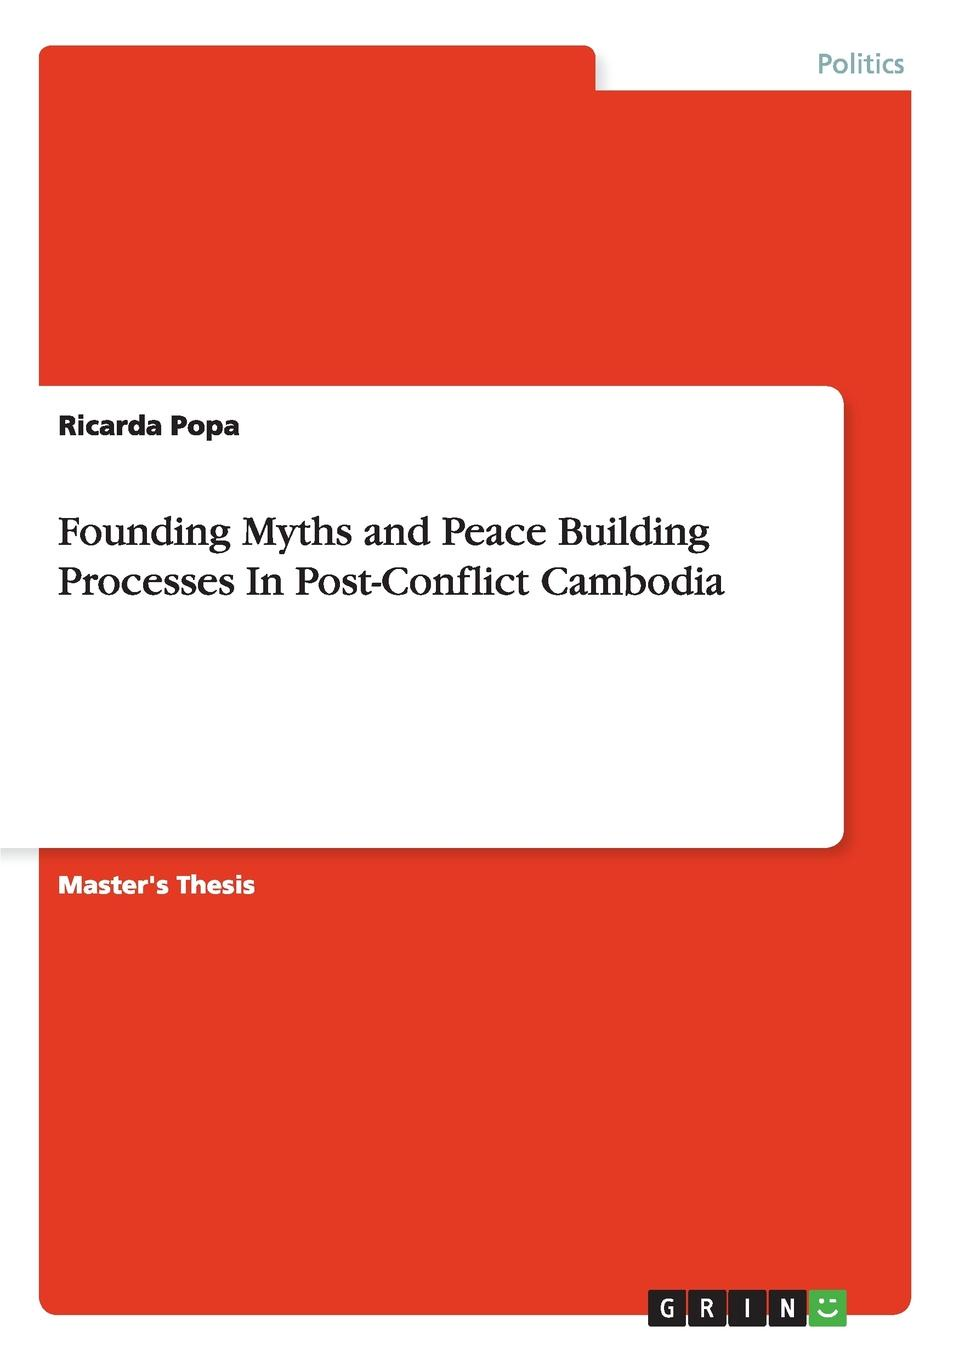 Ricarda Popa Founding Myths and Peace Building Processes In Post-Conflict Cambodia